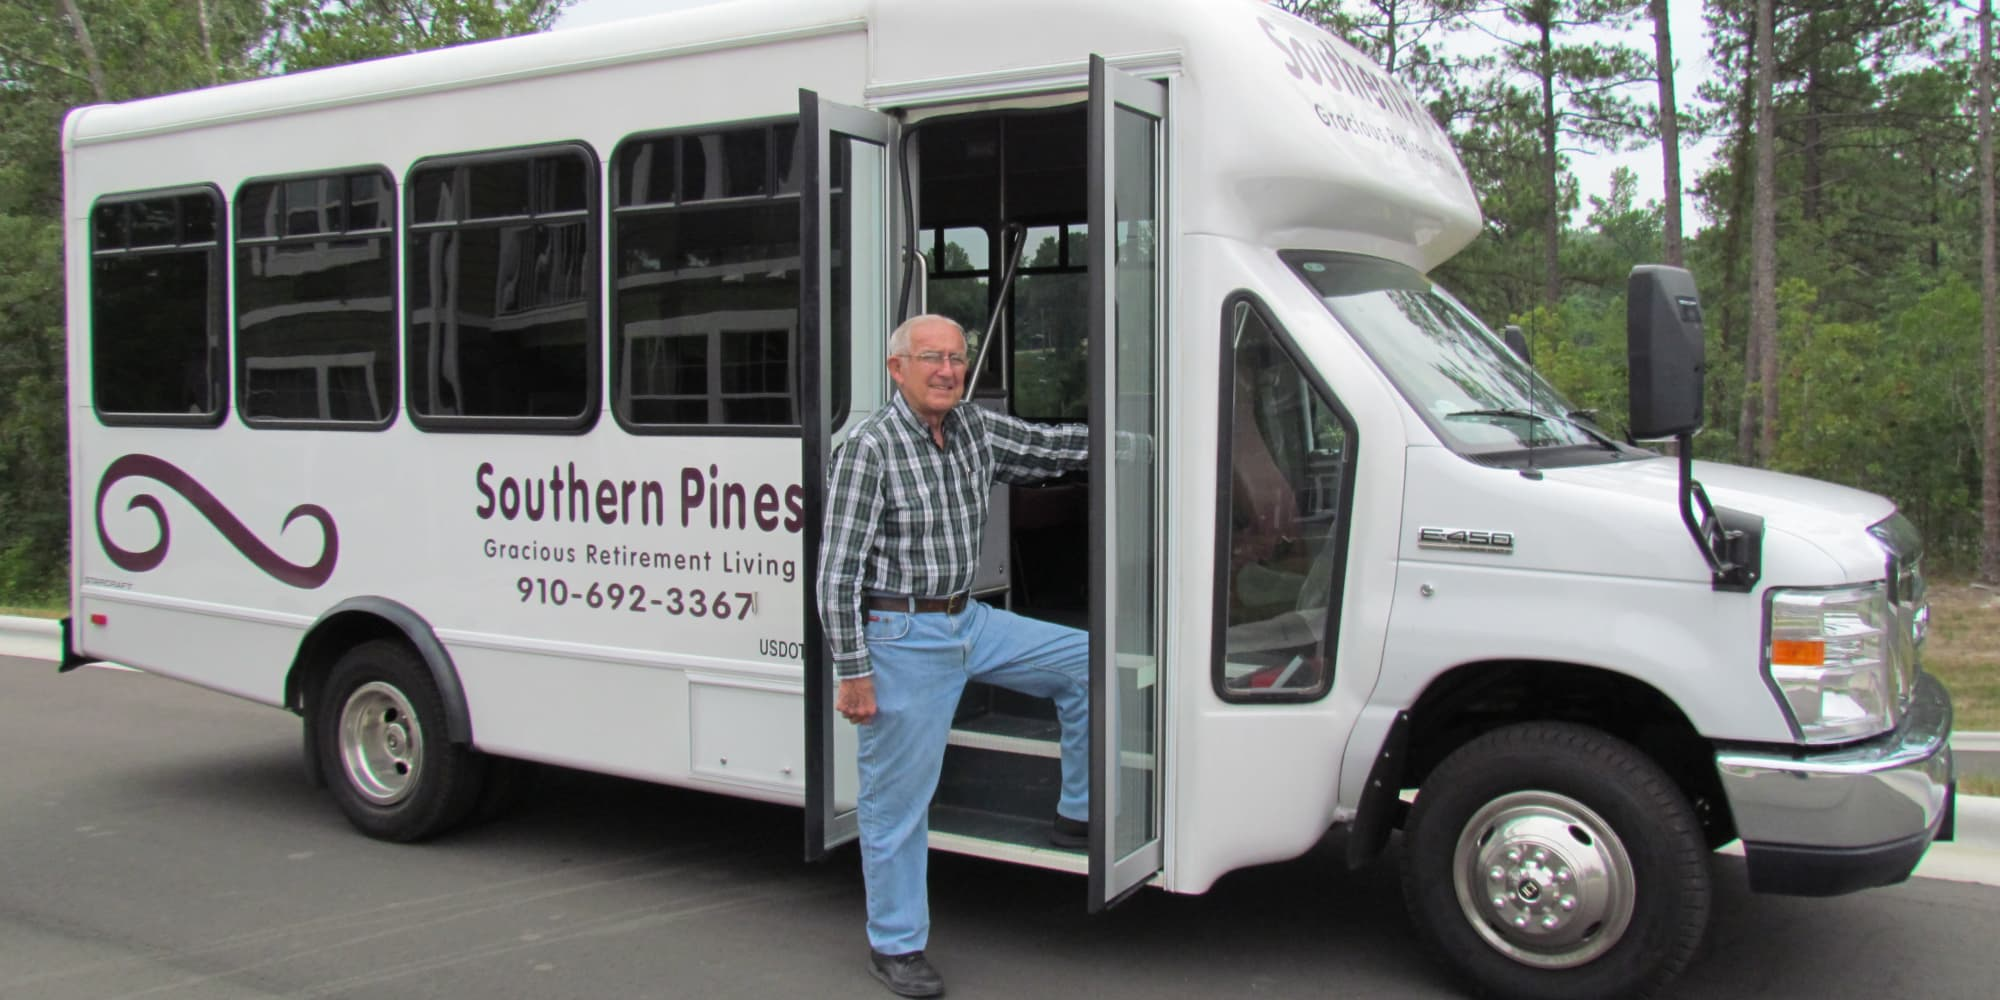 A resident stepping into the community bus at Southern Pines Gracious Retirement Living in Southern Pines, North Carolina